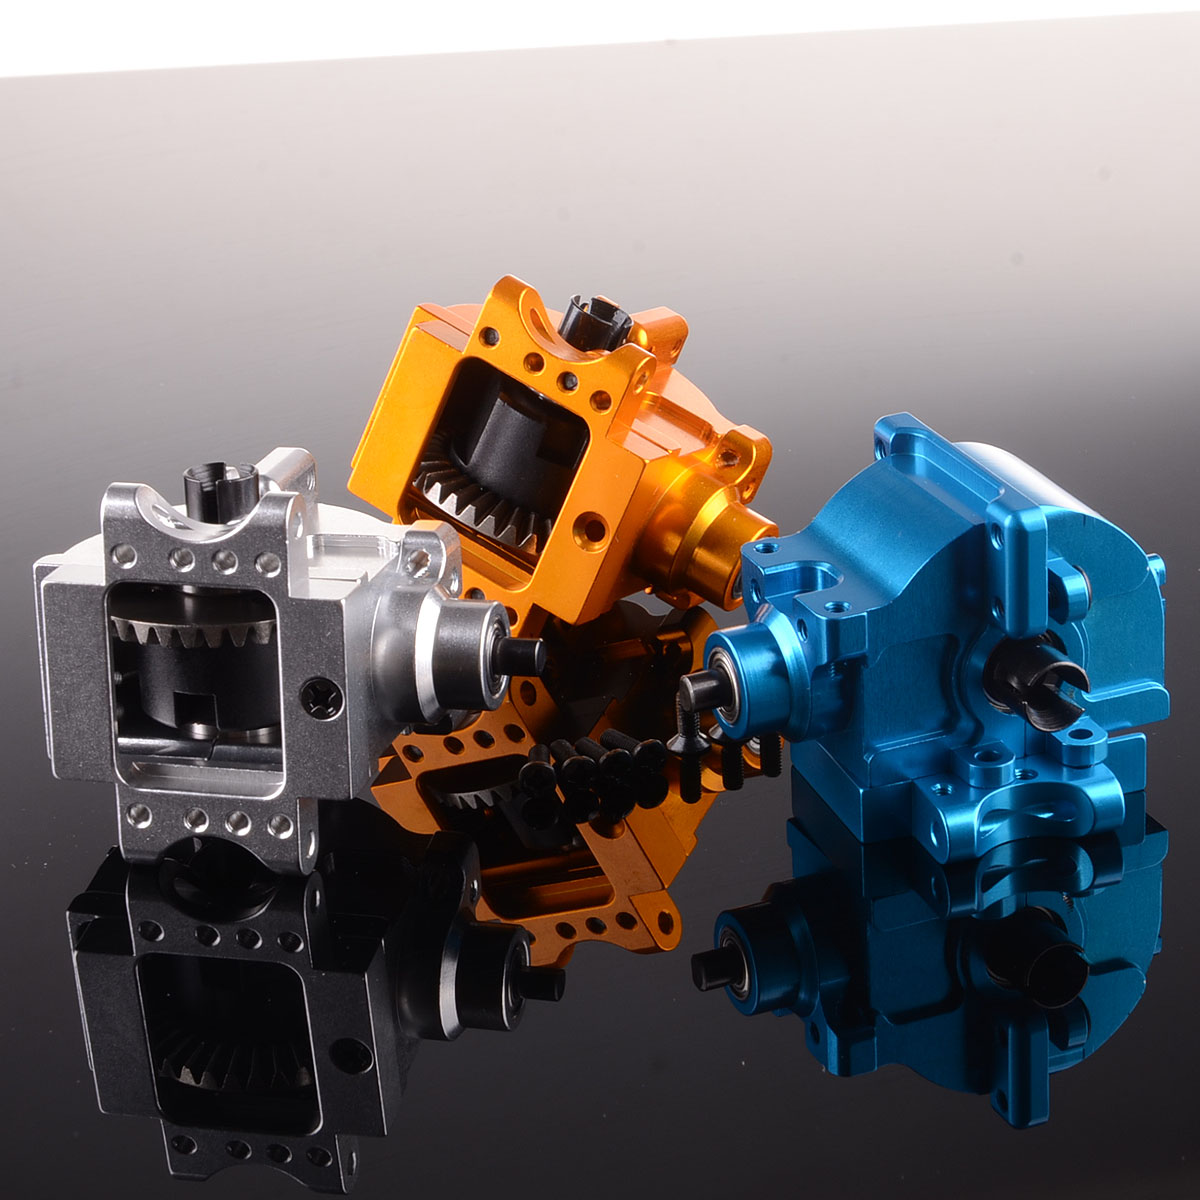 Aluminu Front/Rear Gear Box Complete 06063/06064 Upgrade For RC 1/10 HSP RedCat HSP 1/10 94122/94166/94188 front gear box housing complete set drive